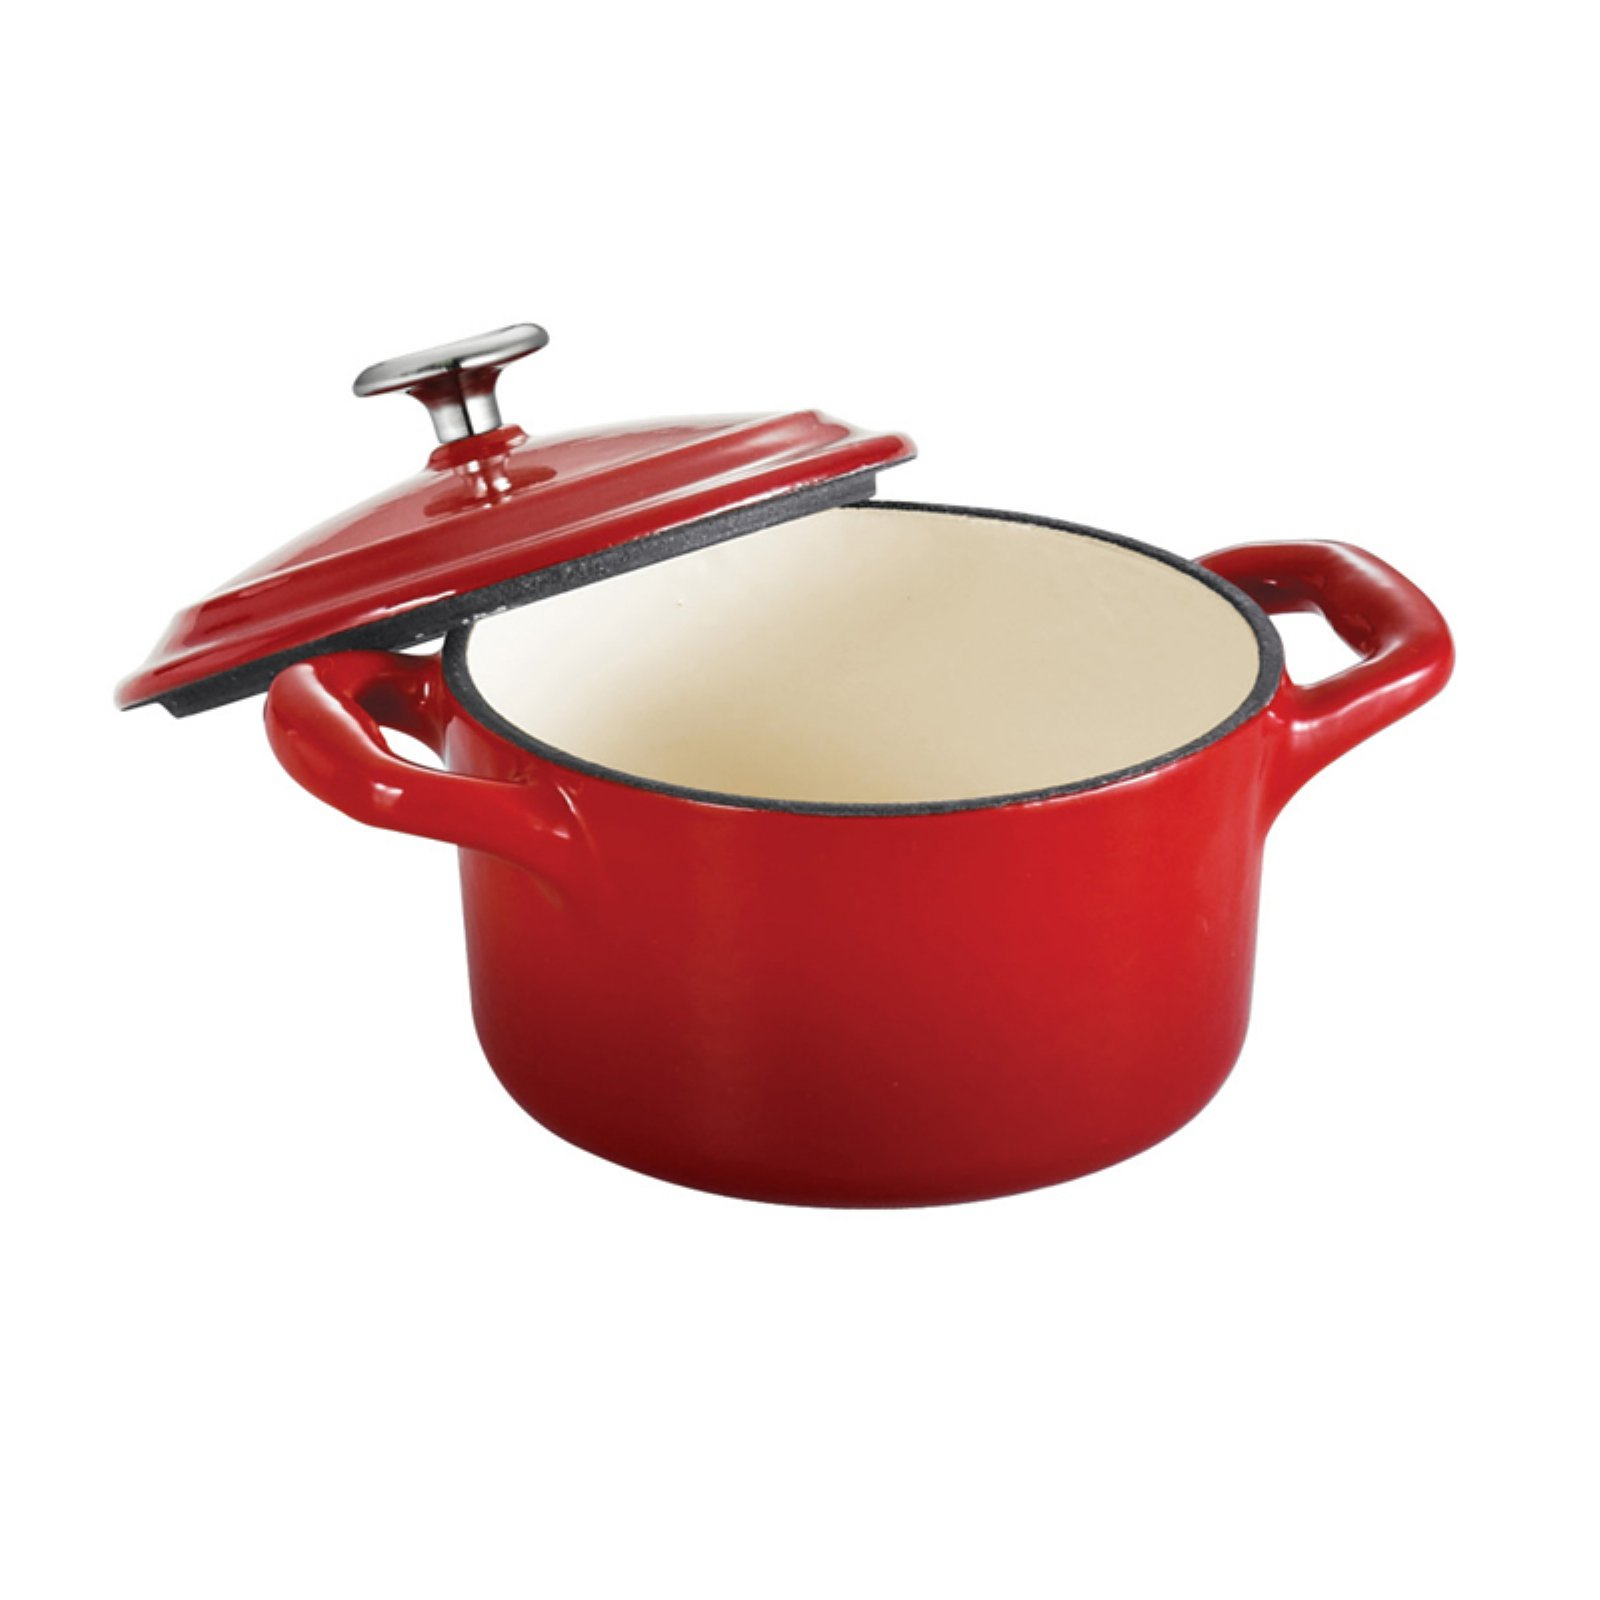 Tramontina Gourmet Enameled Cast Iron 10.5 oz. Covered Mini Cocotte - Gradated Red